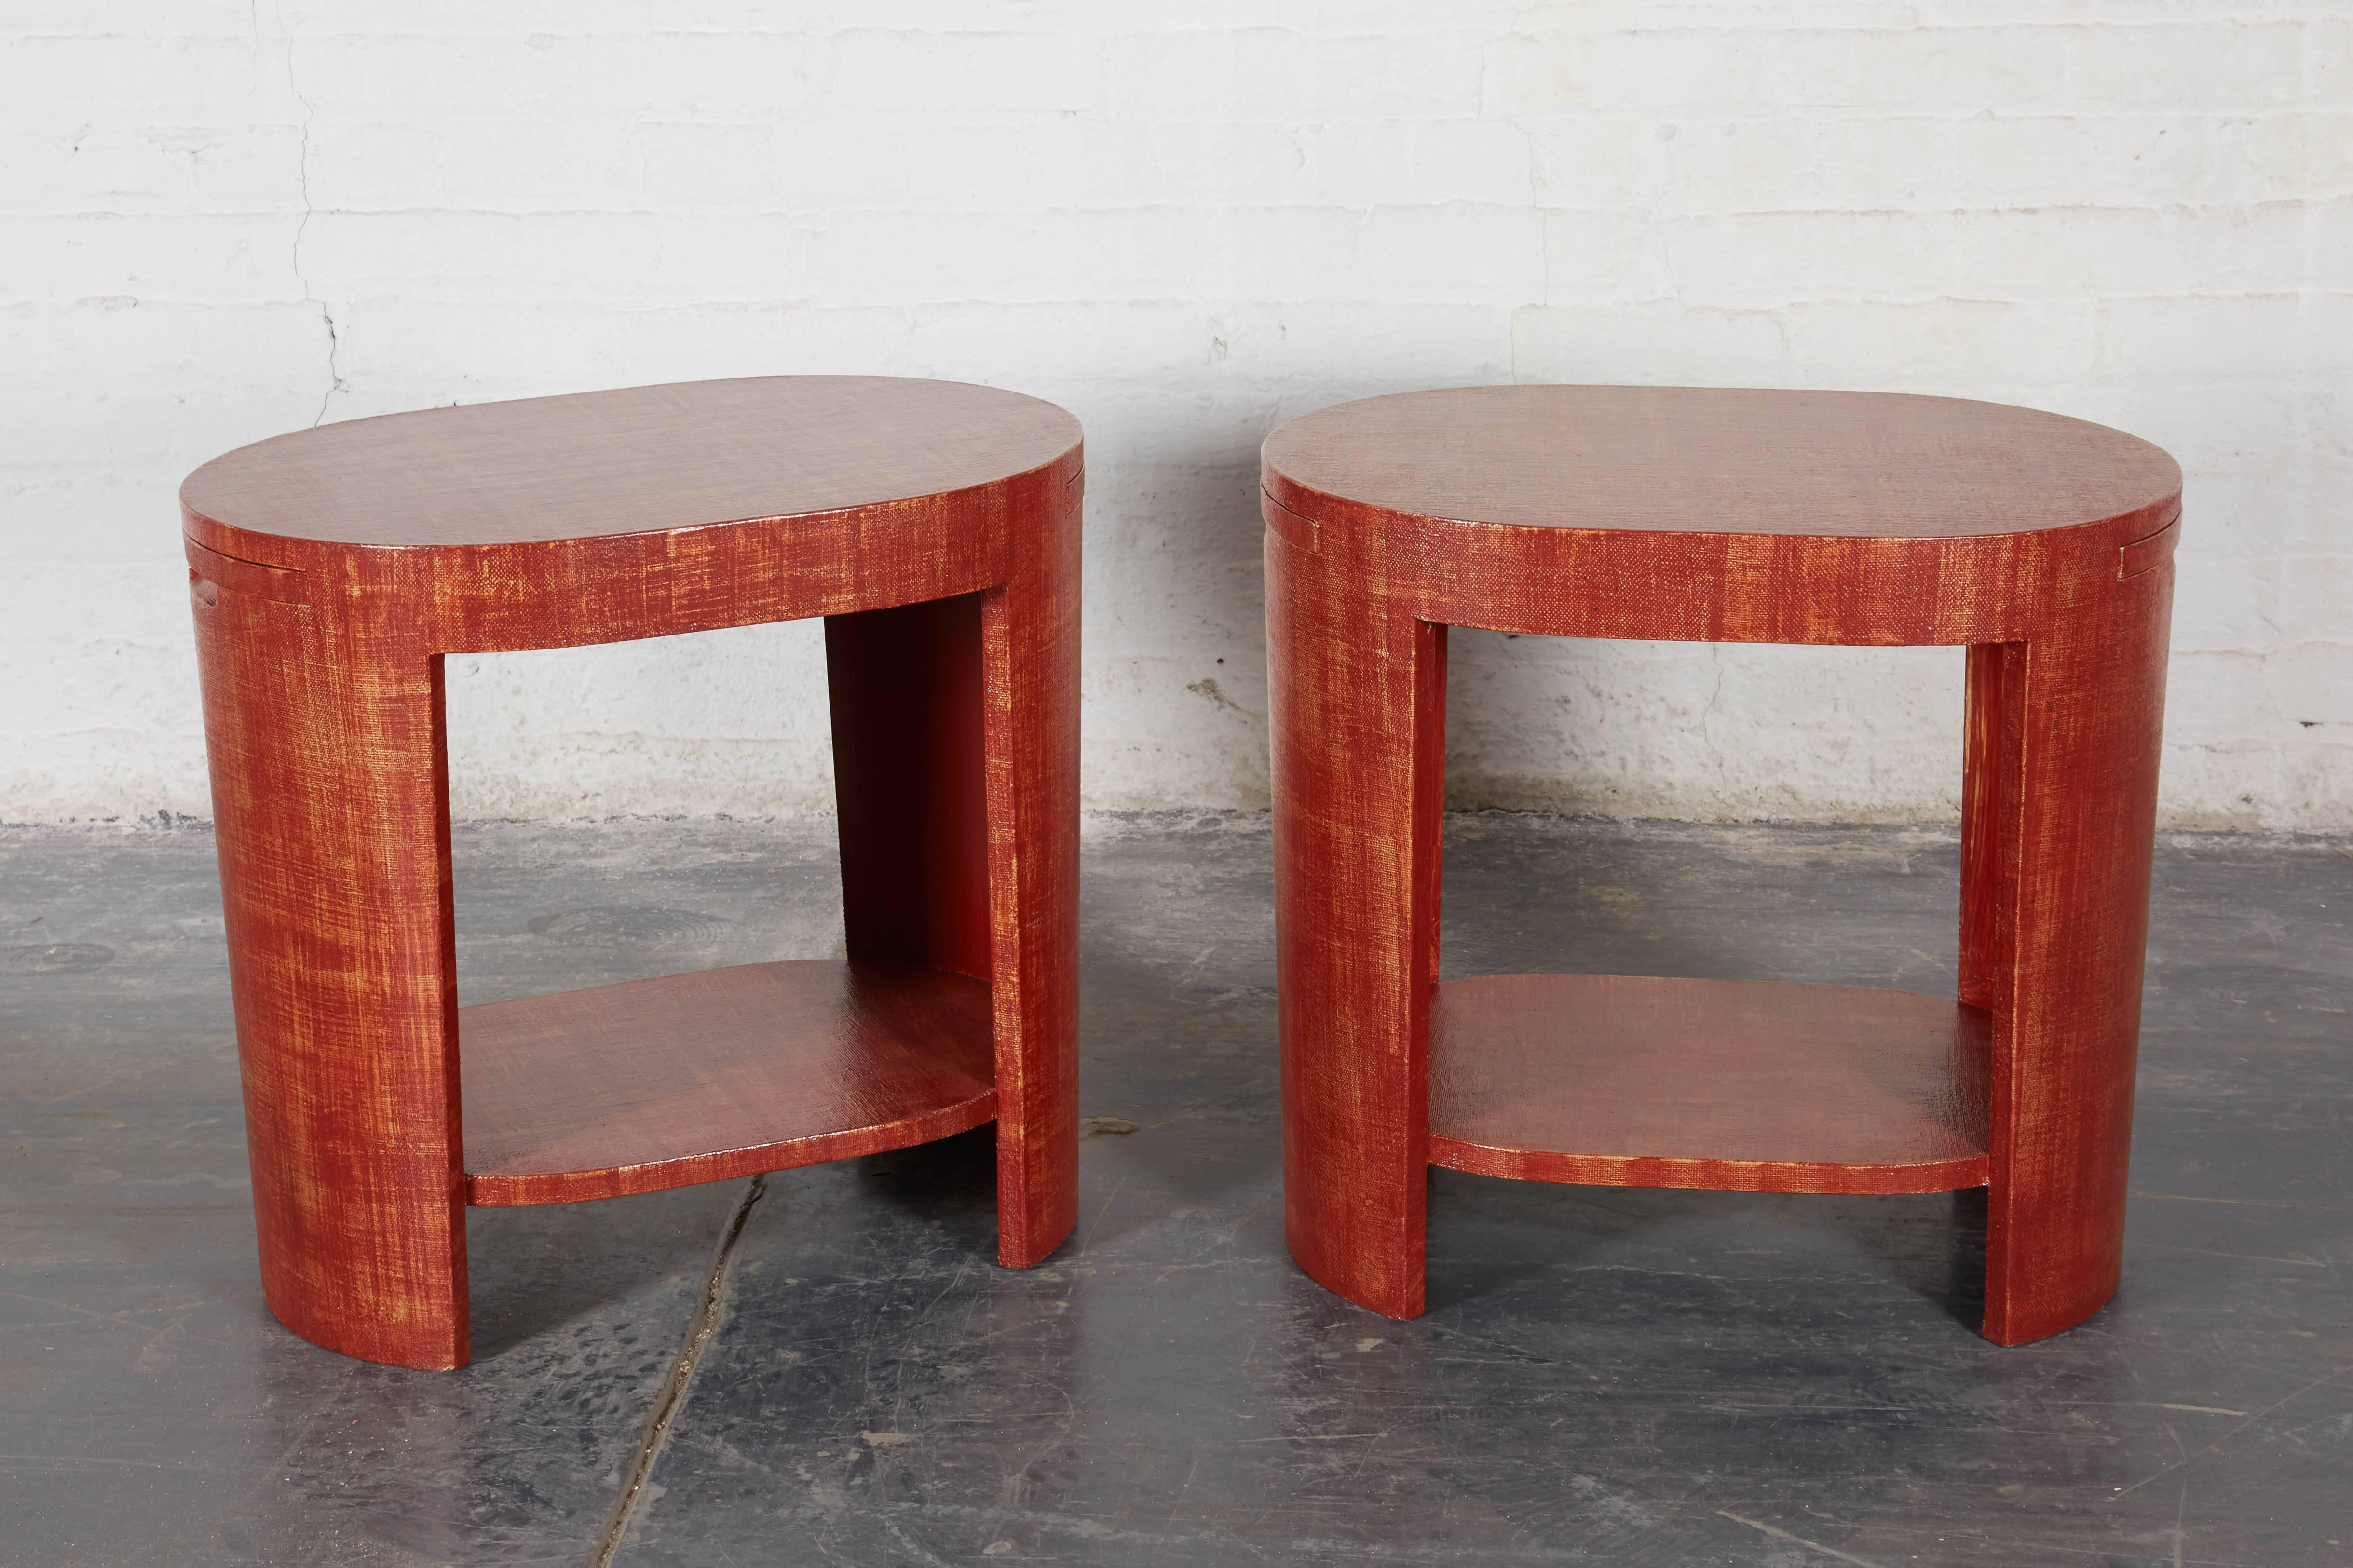 Brick Red LinenWrapped Oval End Tables For Sale at 1stdibs